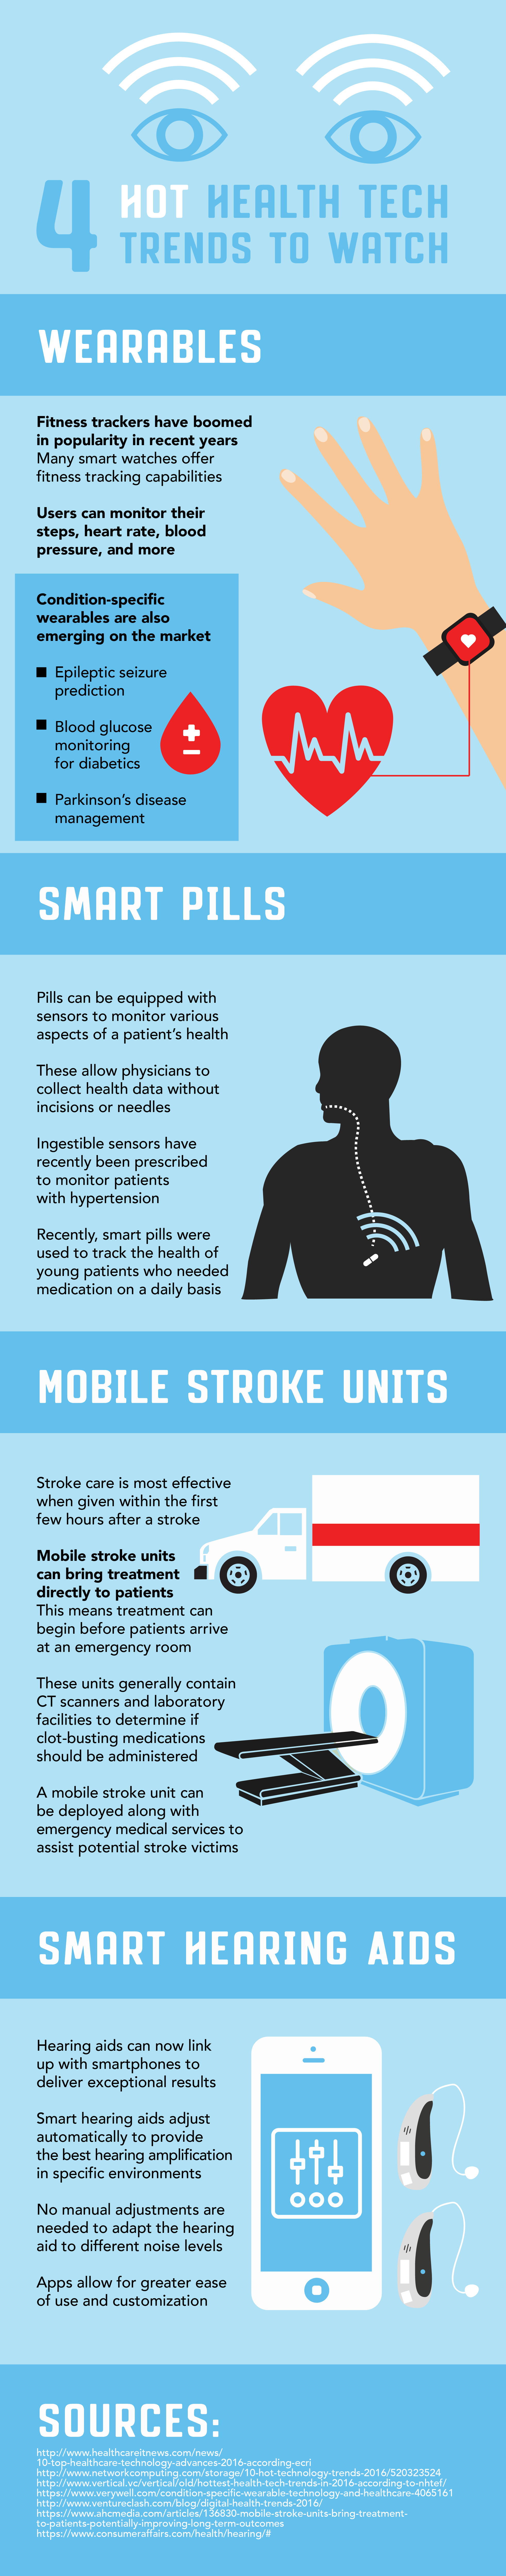 Infographic About Health Tech Trends